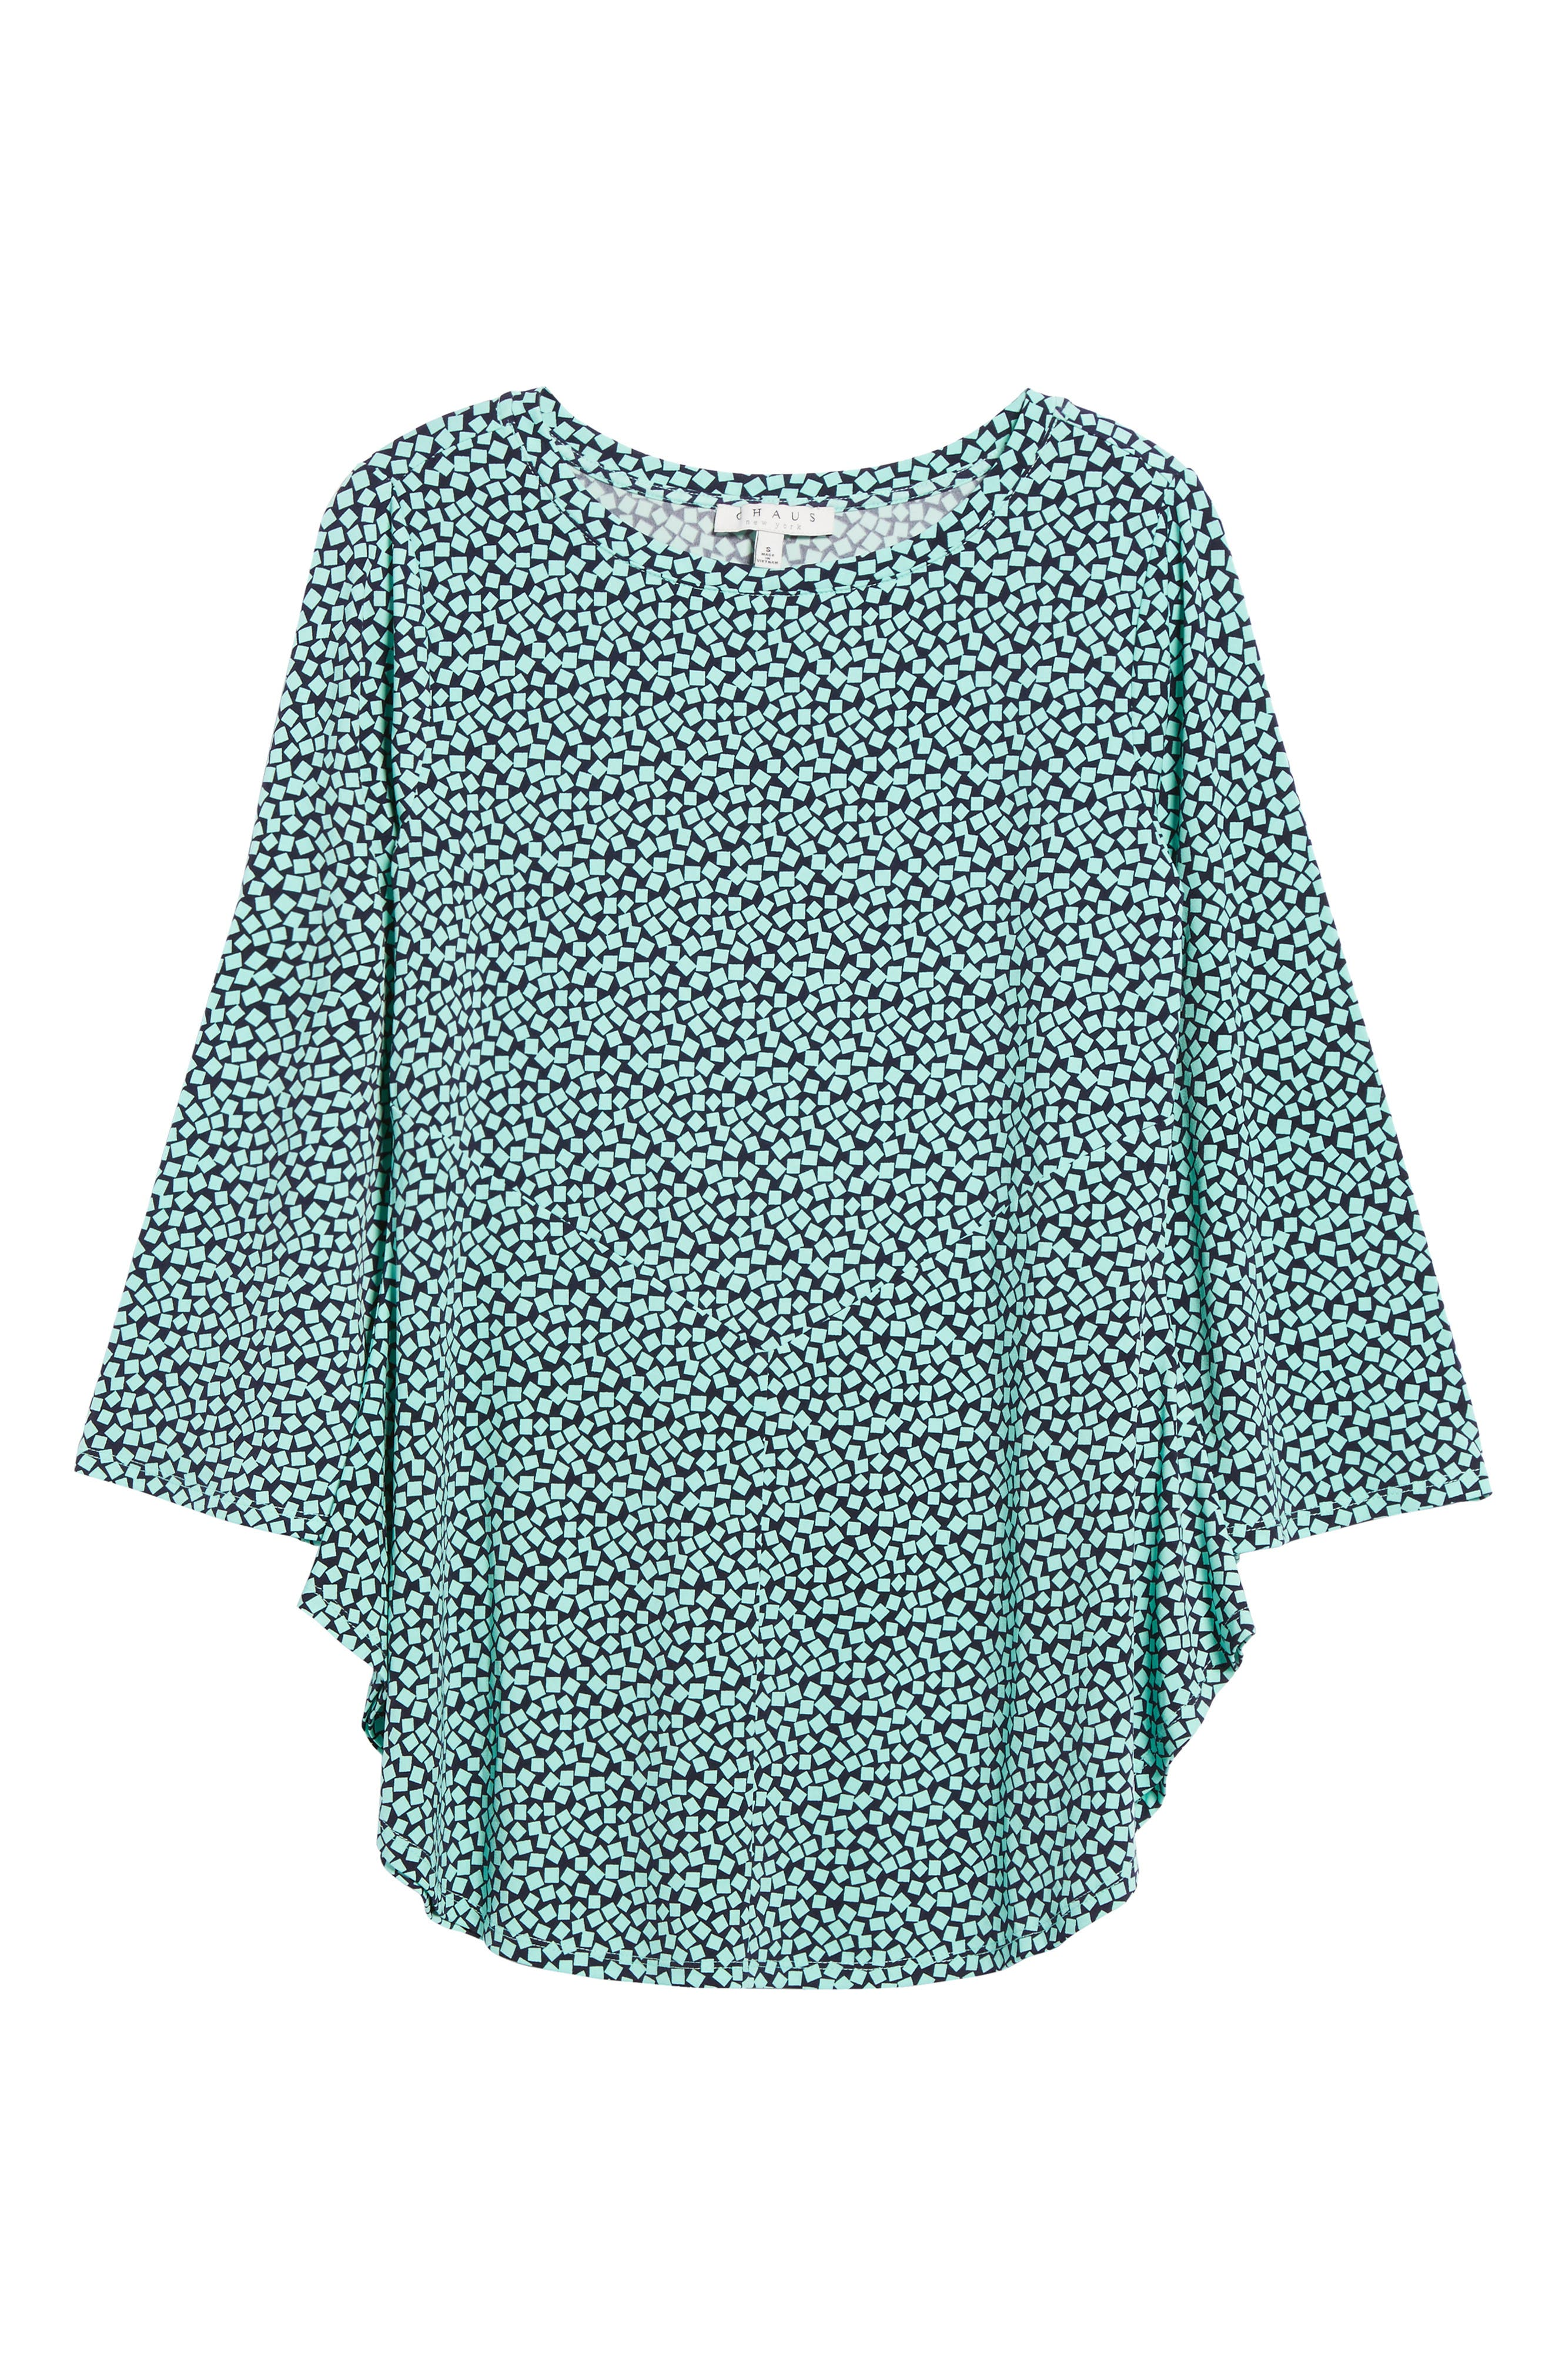 Bell Sleeve Cube Print Top,                             Alternate thumbnail 6, color,                             Sea Glass